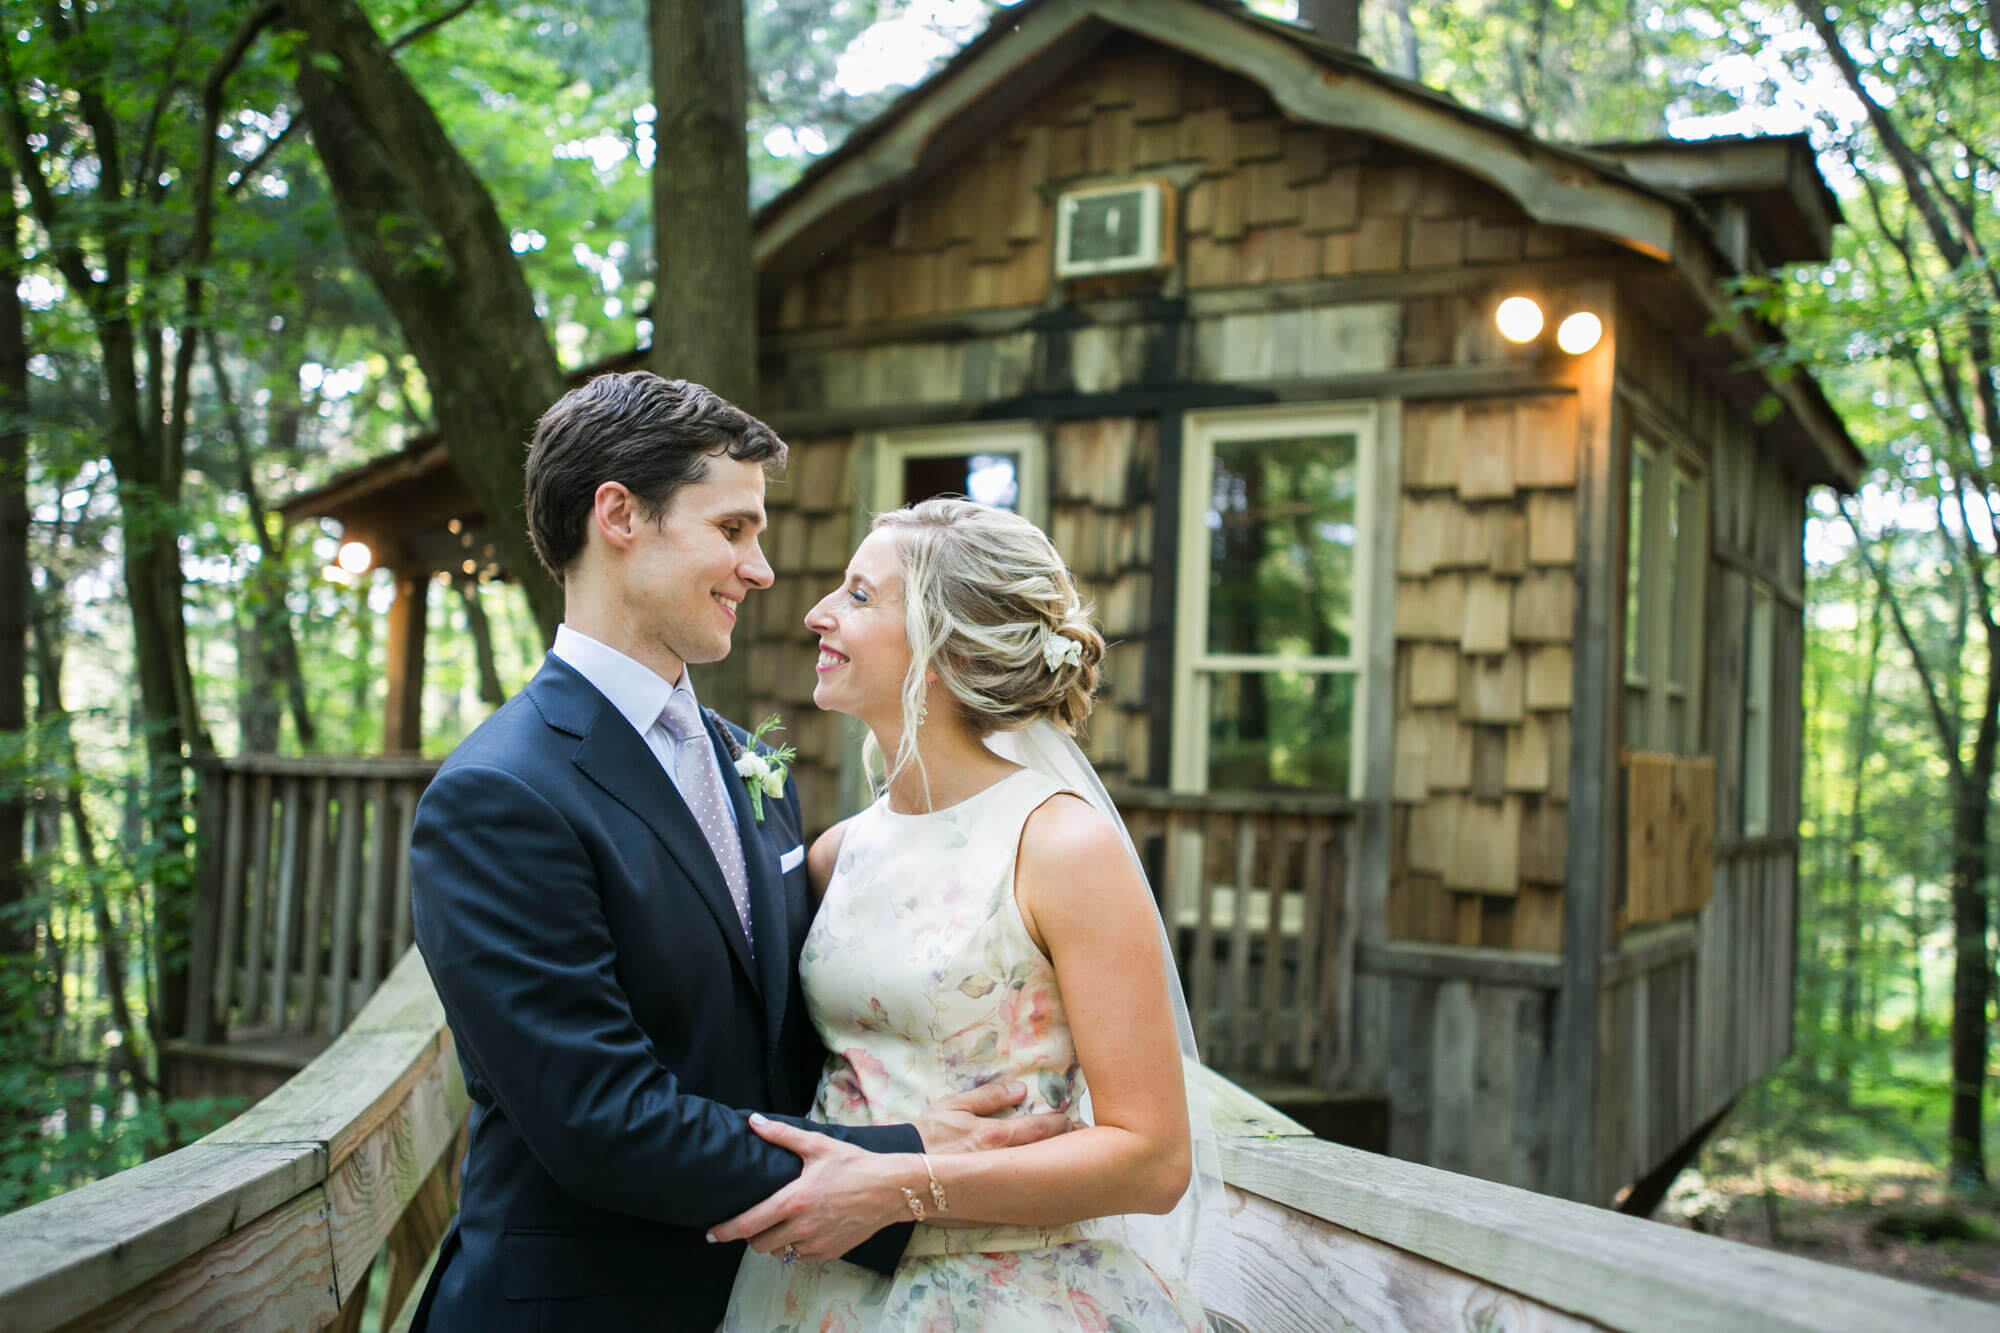 LESLIE & DANE // THE GRAND BARN AT THE MOHICANS  MOHICAN STATE PARK, OH